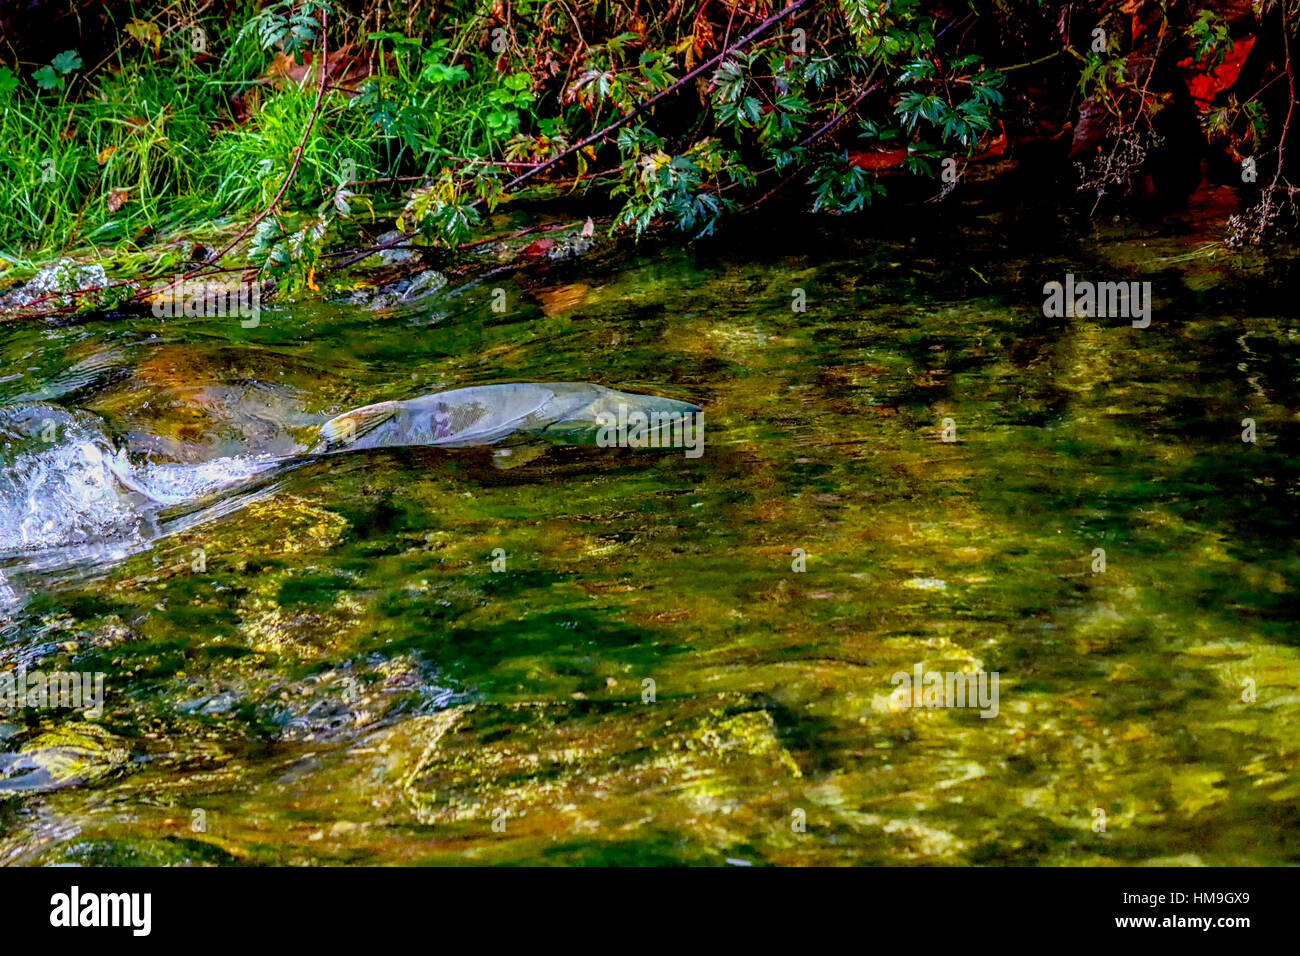 Wildlife in Vancouver BC - Pacific salmon fast swimming in the river, Mission 4. - Stock Image